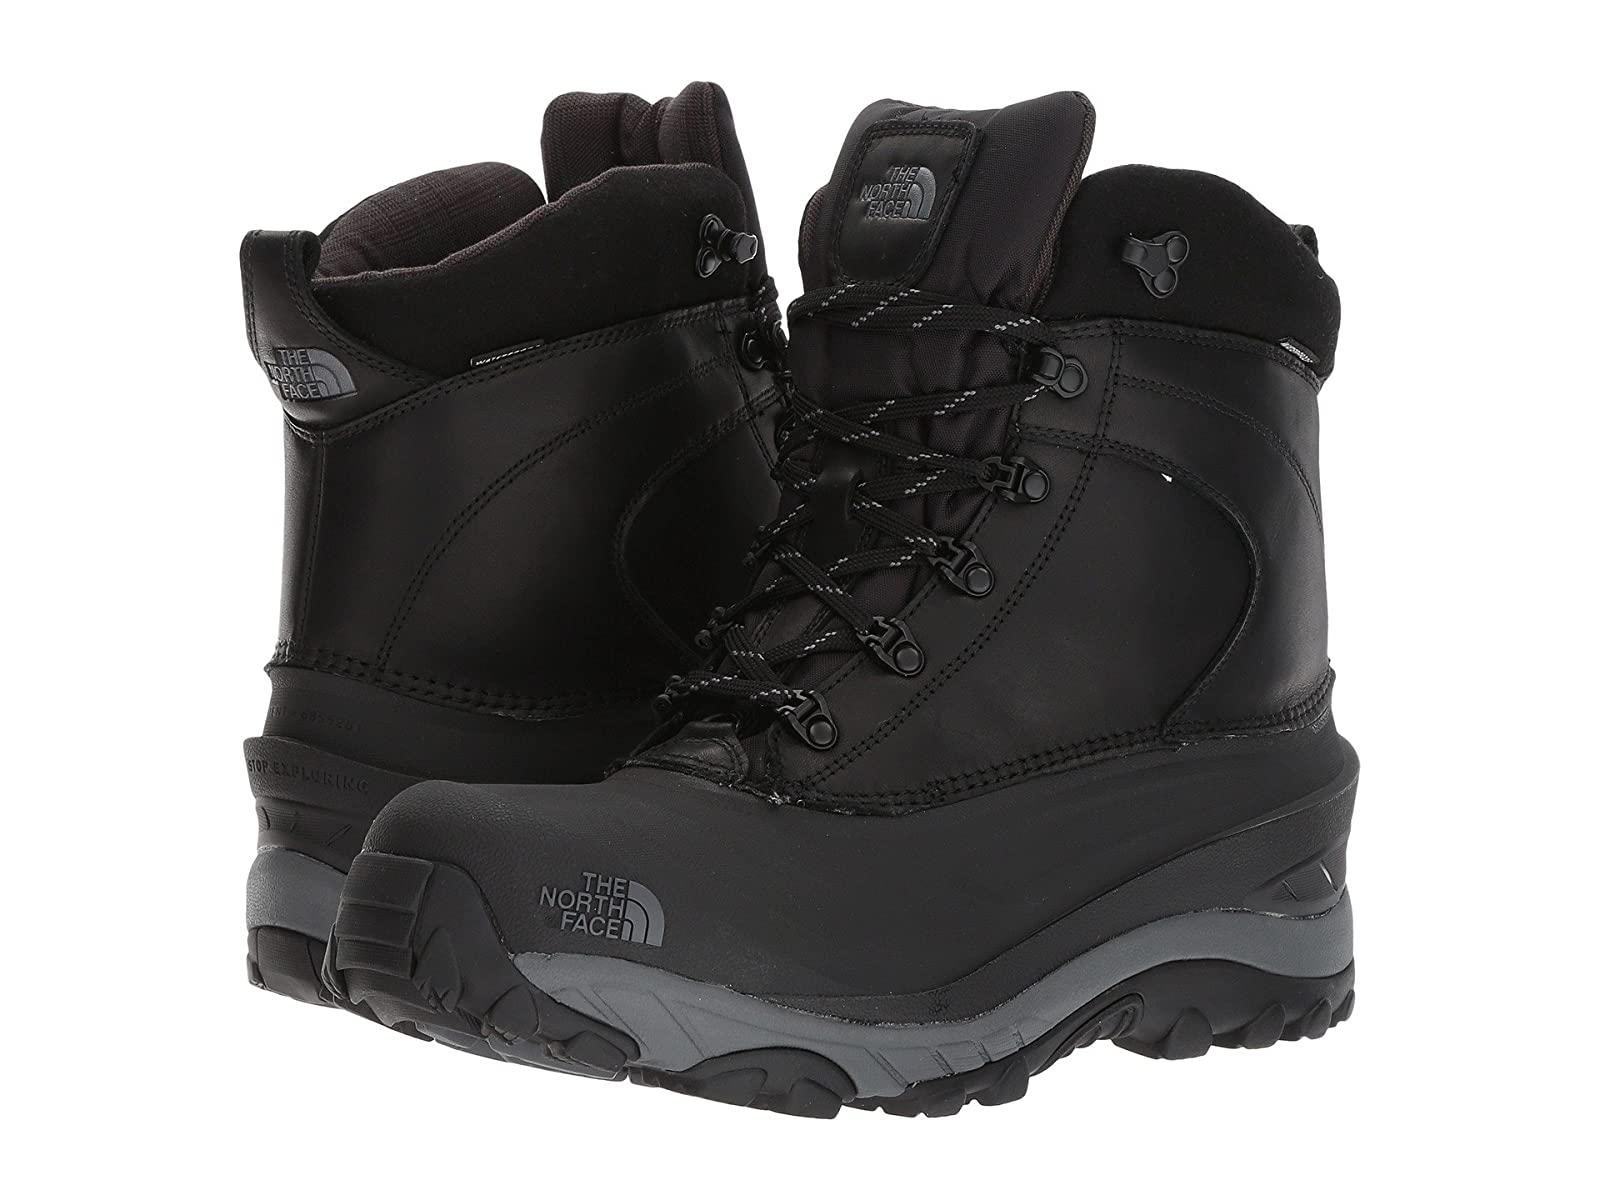 The North Face Chilkat III LuxeCheap and distinctive eye-catching shoes